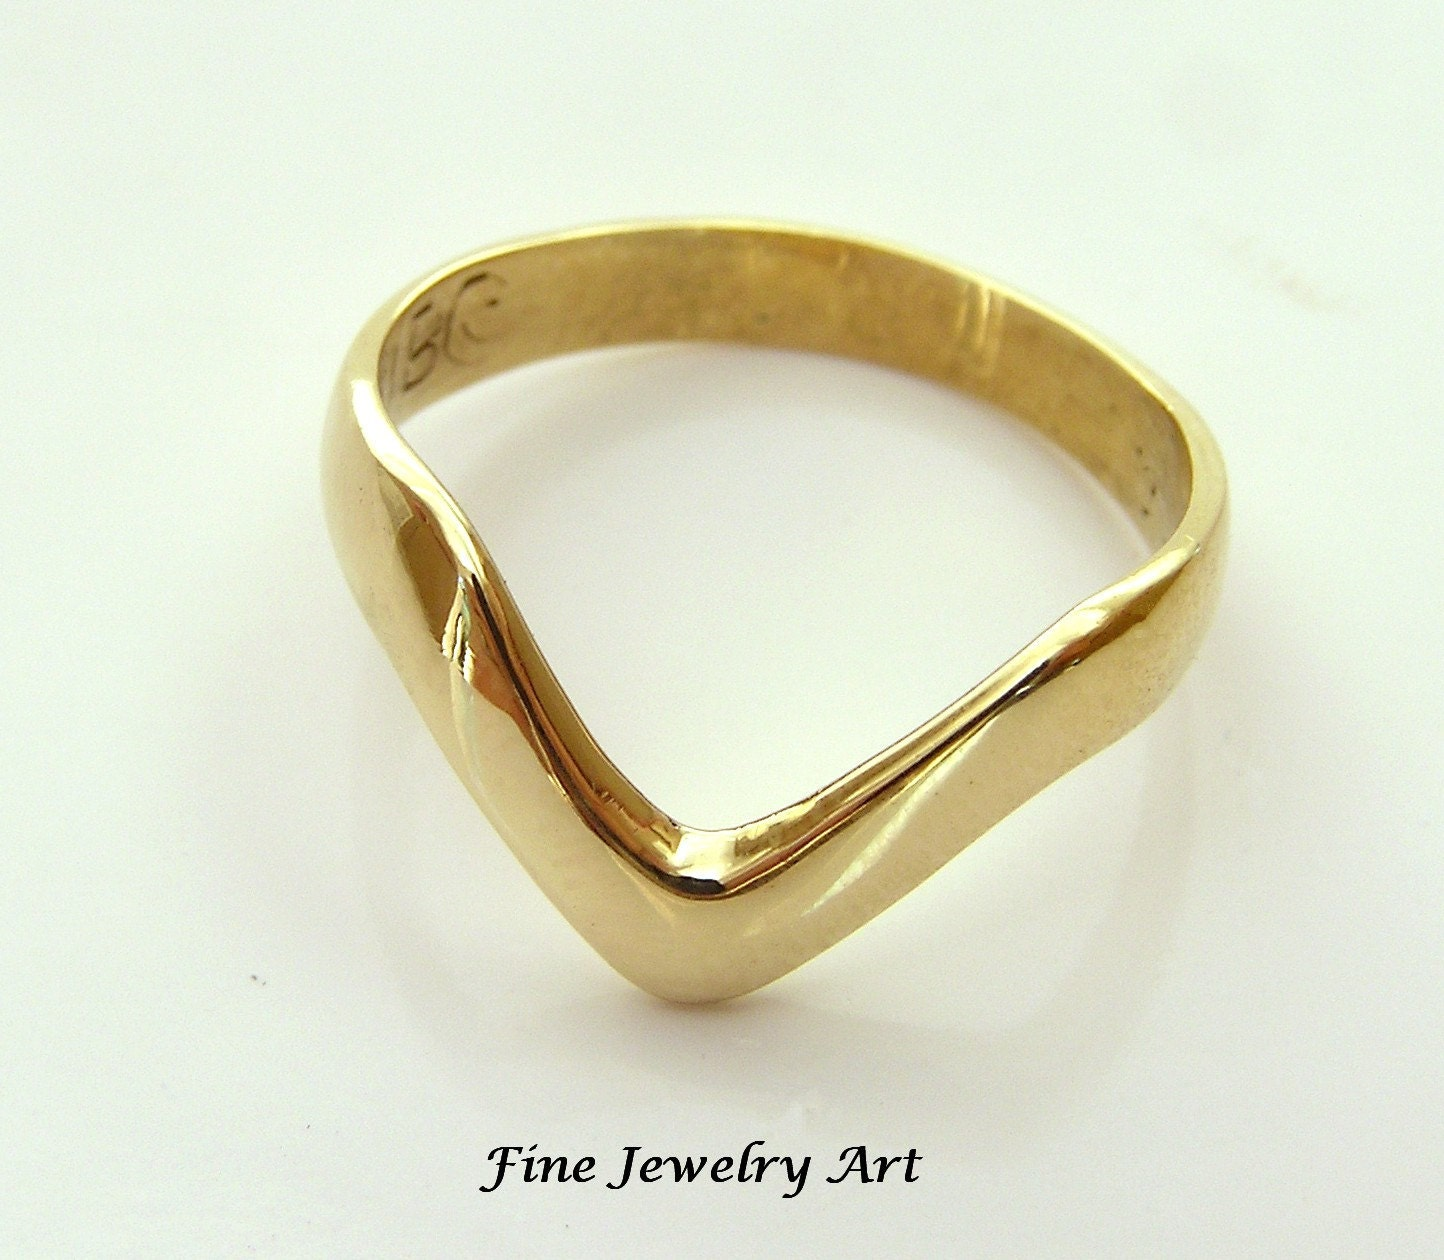 v ring chevron ring shaped band handmade in 14k yellow solid gold non - Non Traditional Wedding Rings